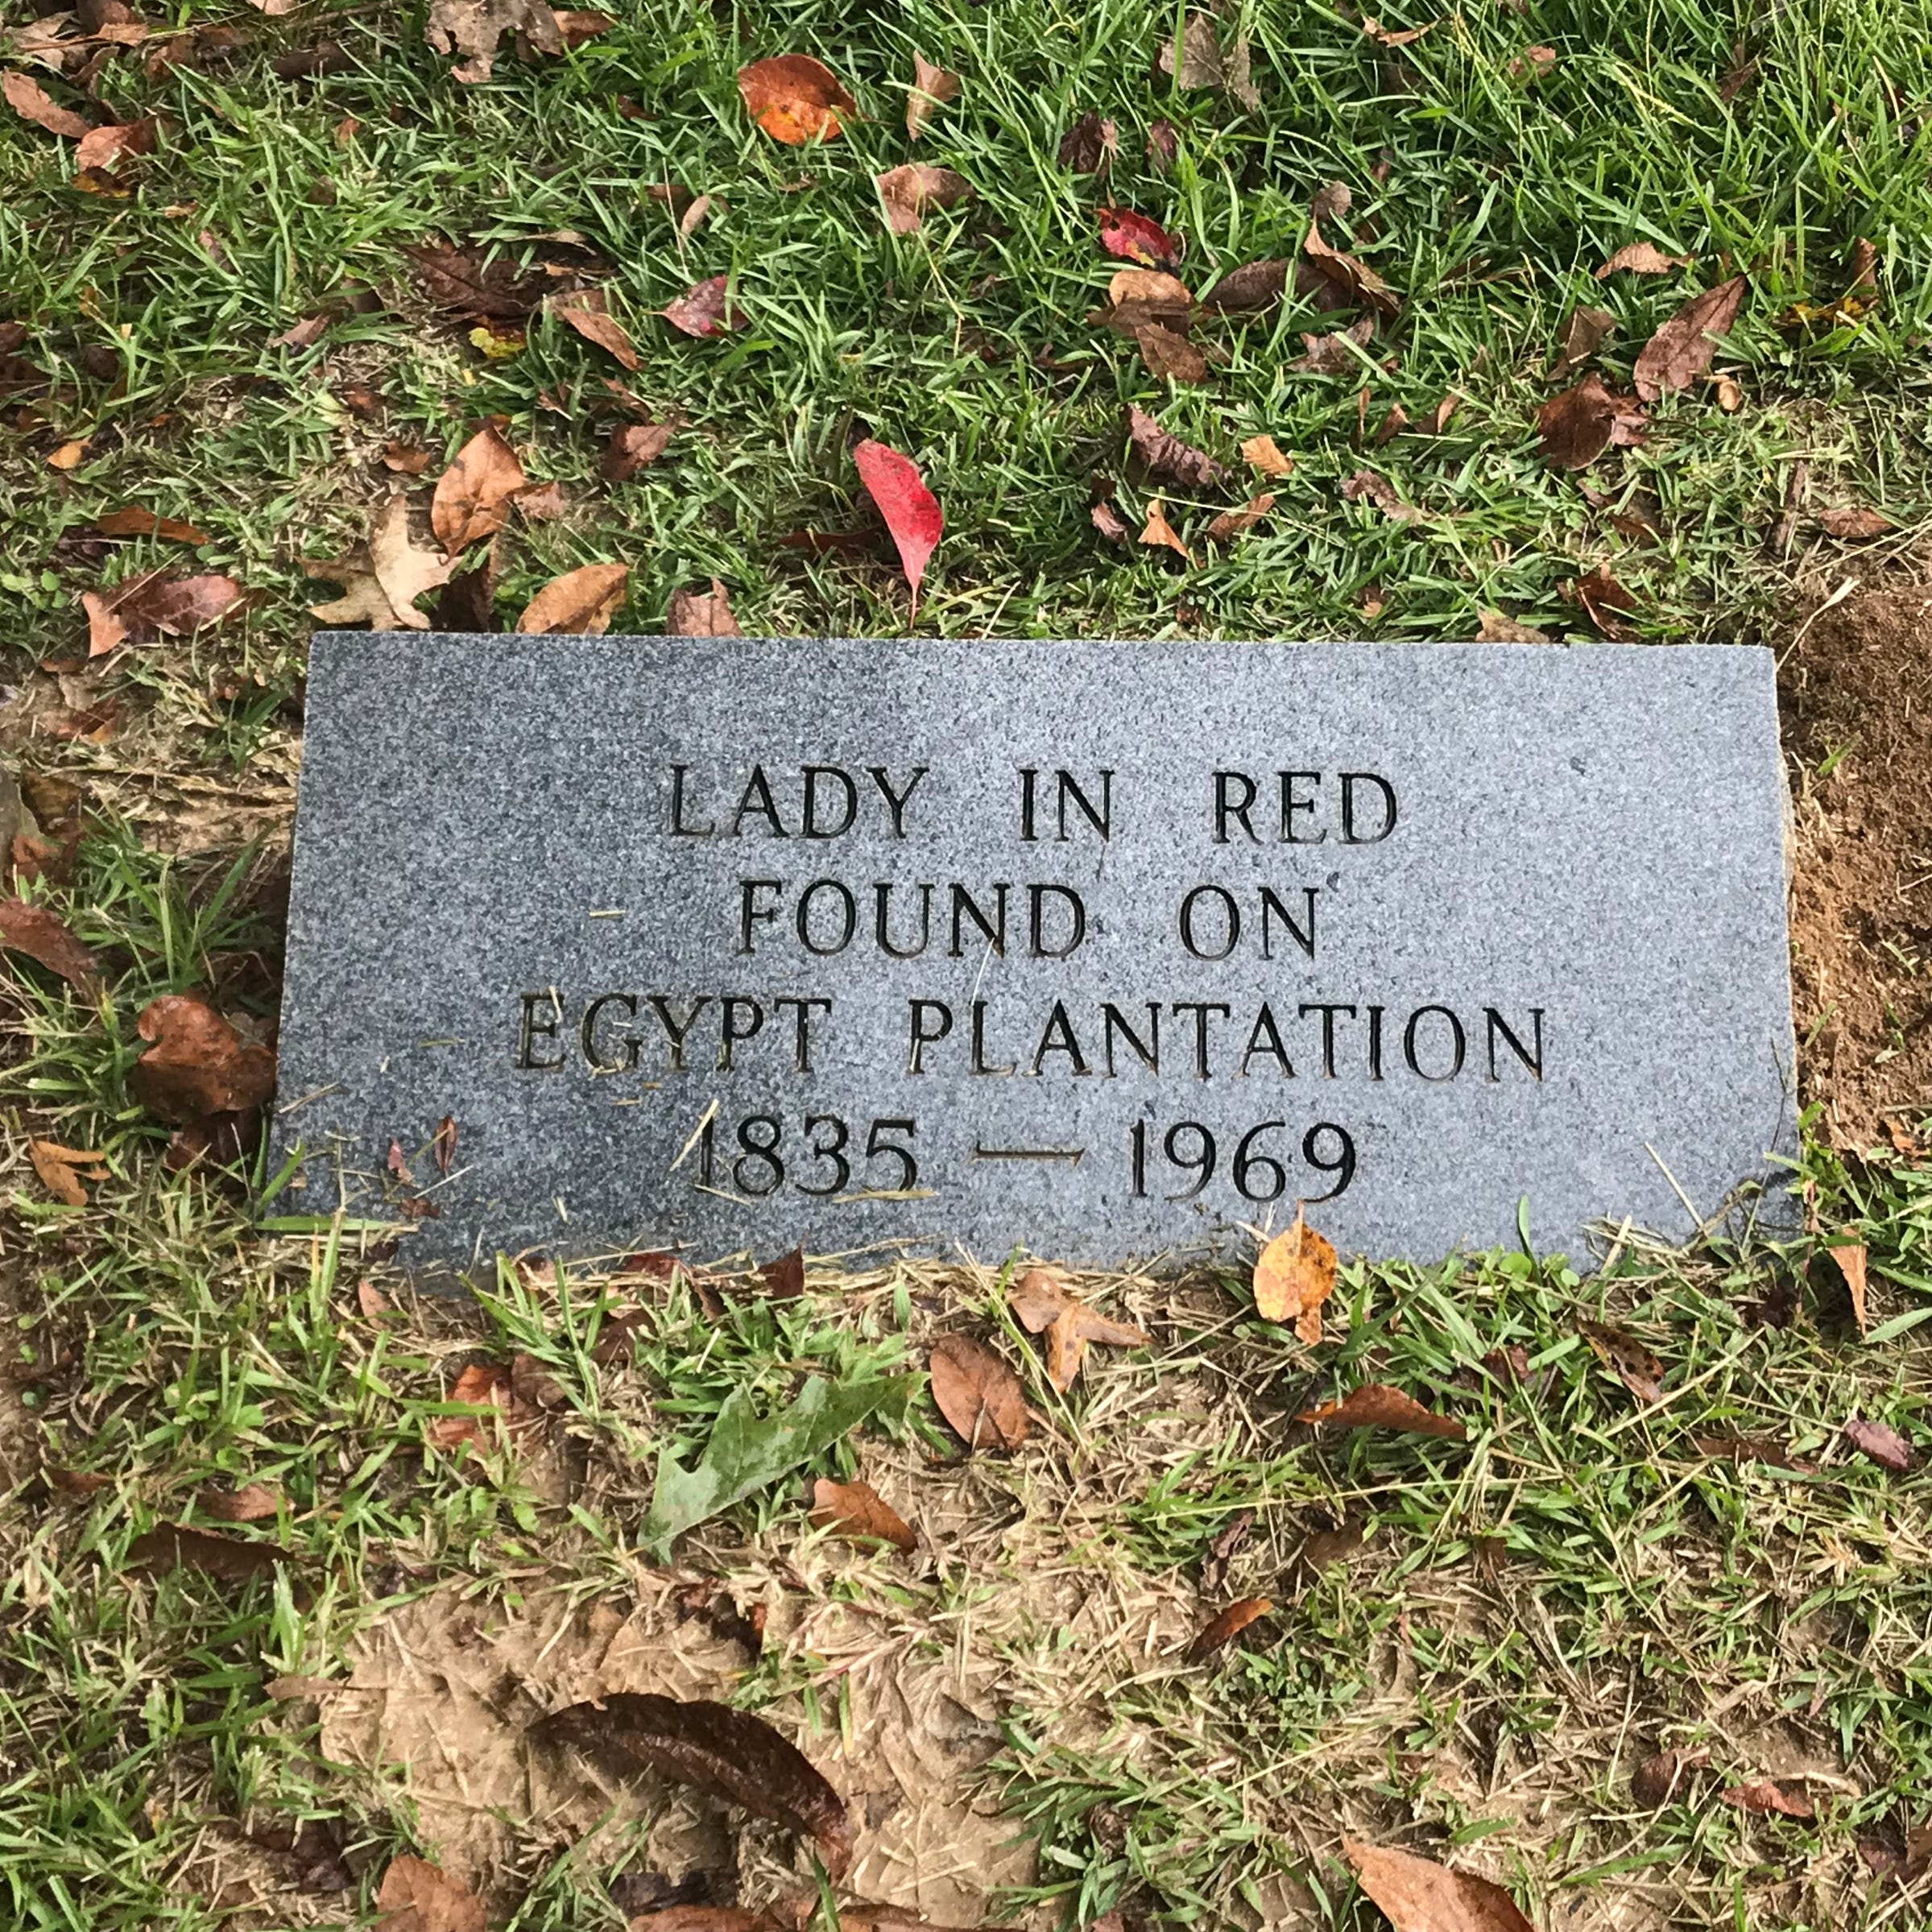 'She has no one to pray over her:' Lady in Red remains a Mississippi mystery. Who is she?